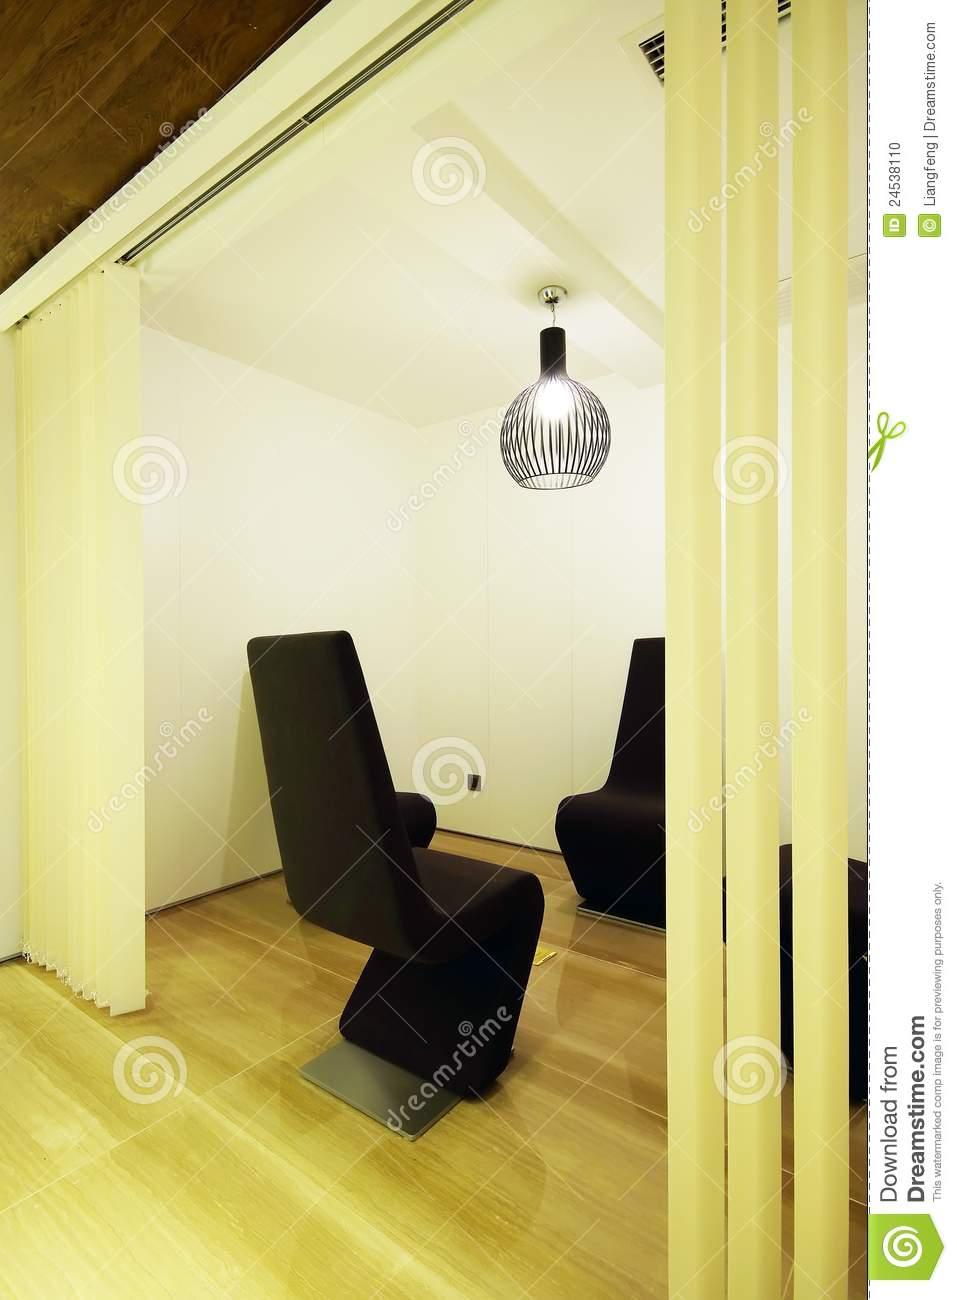 Small living room stock photo image of hall living 24538110 - Very small space of time image ...